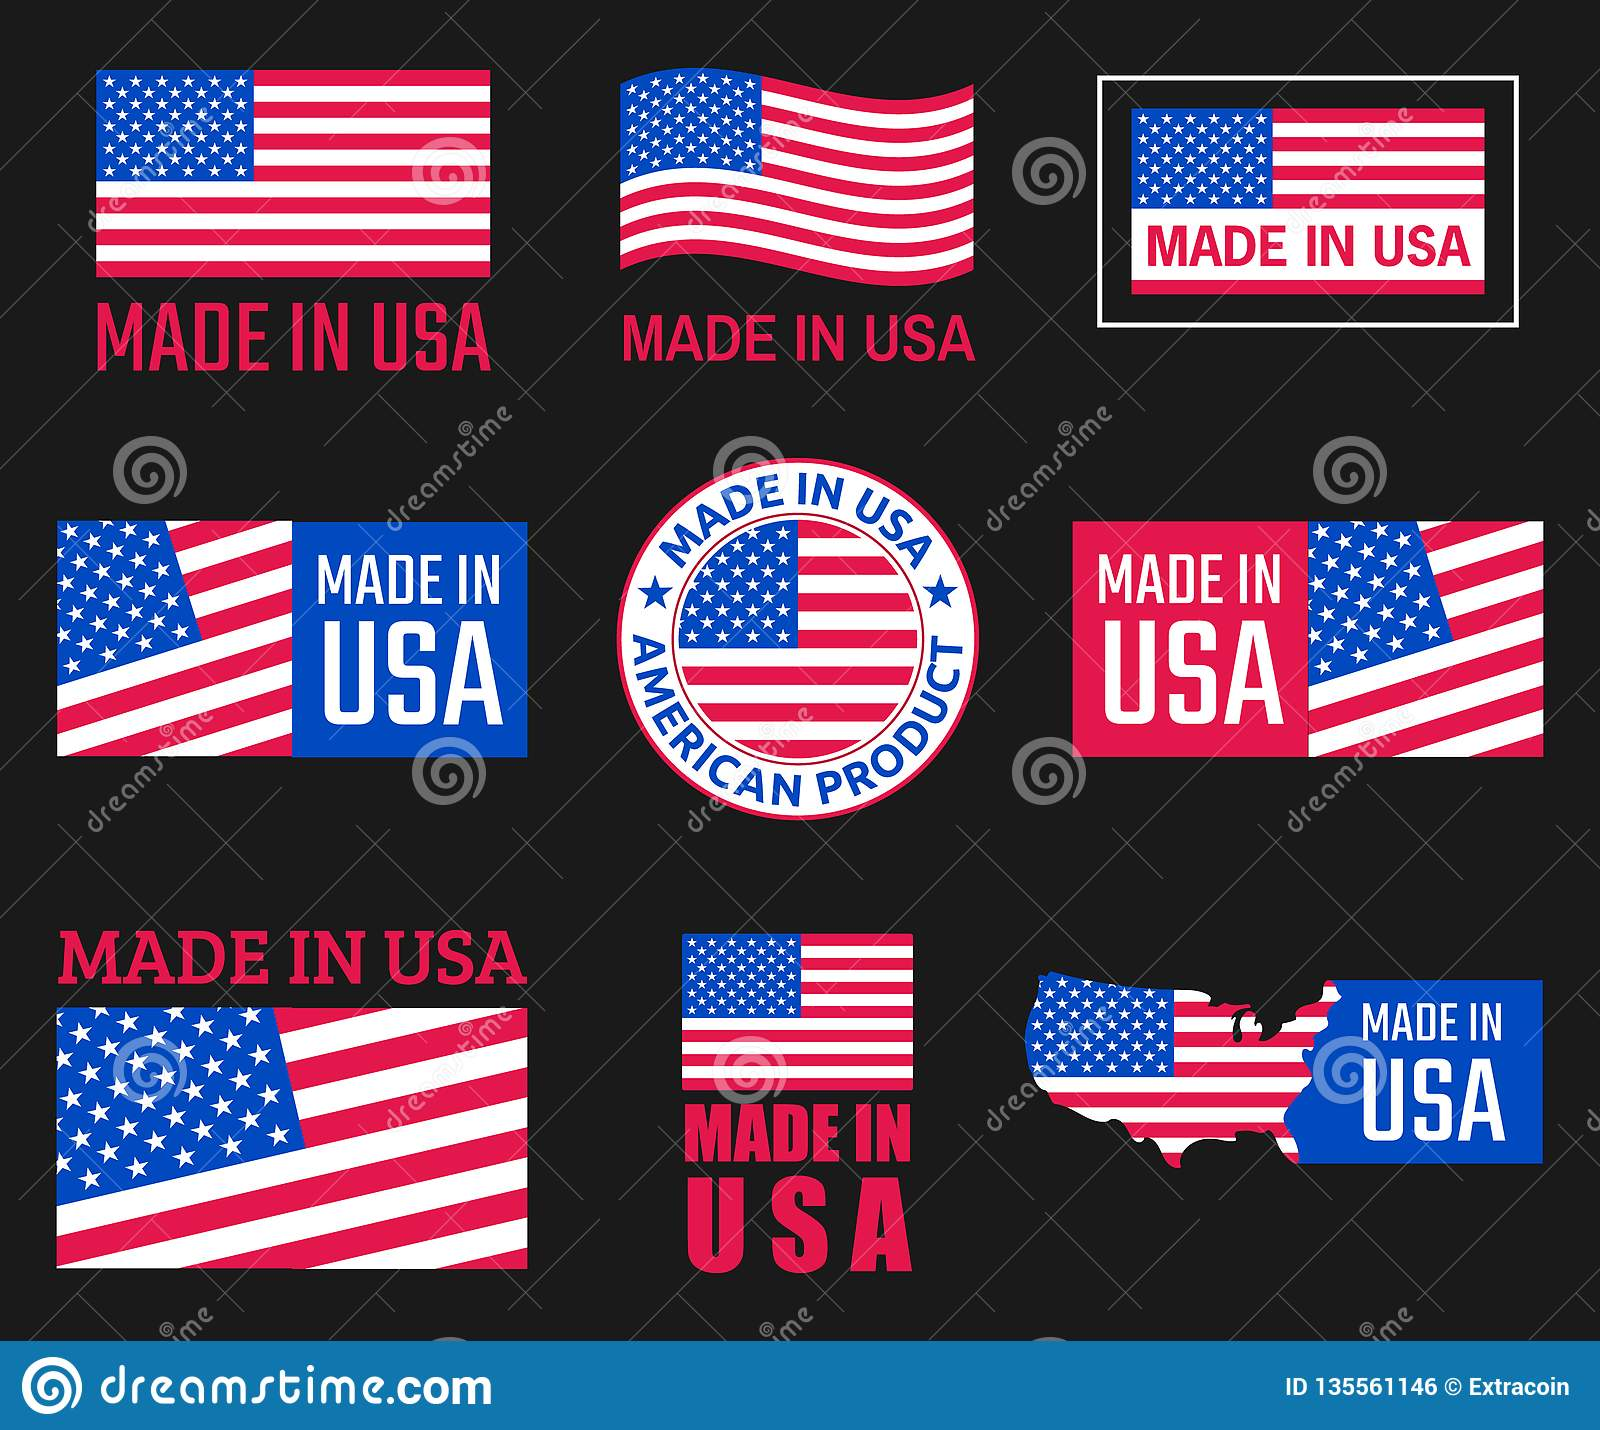 Made In Usa Icon Set, American Product Labels Stock Vector